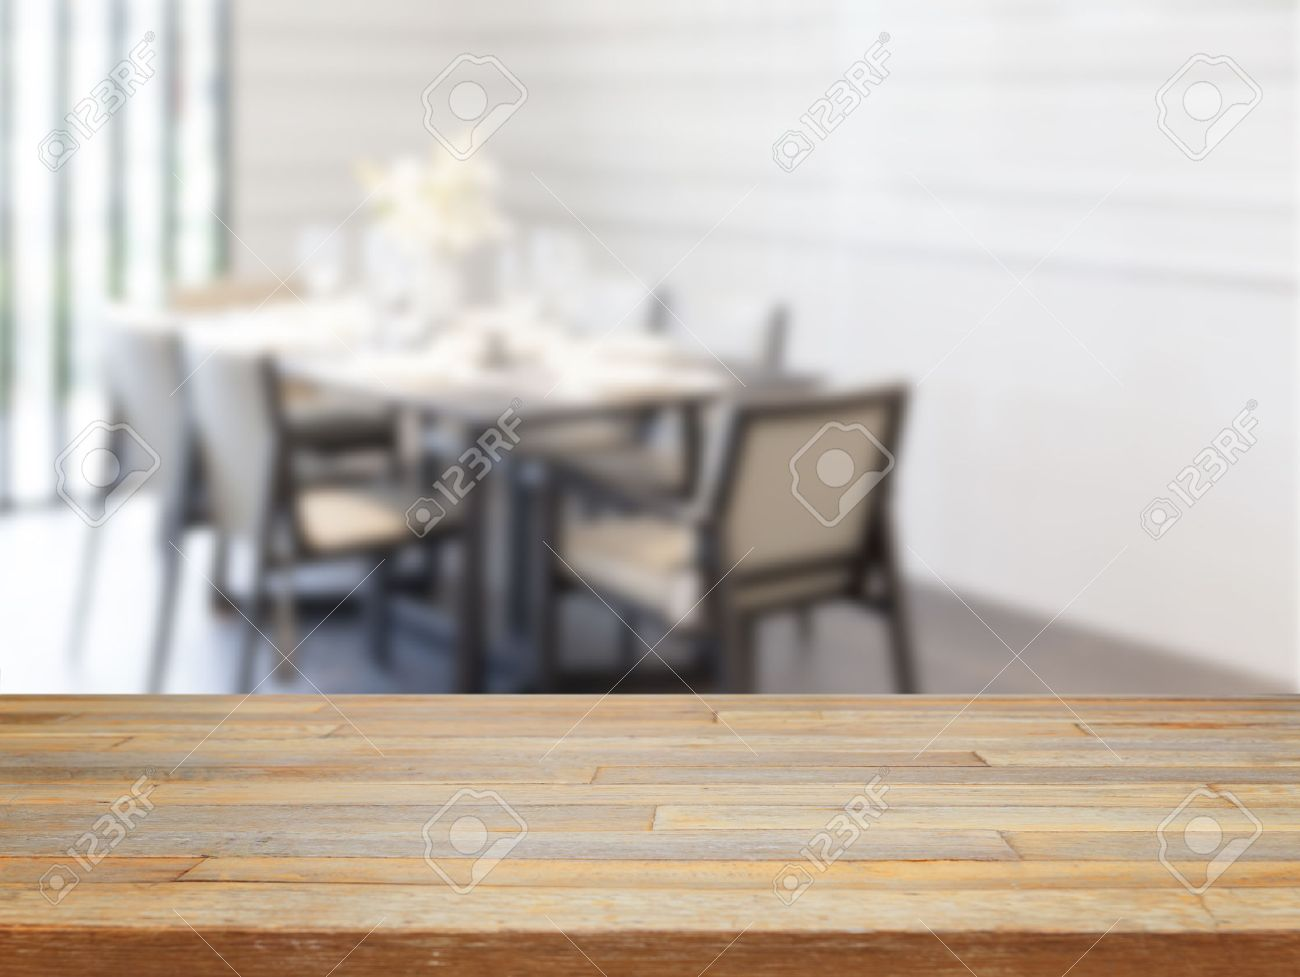 Kitchen Table Background Adorable Empty Wooden Table And Dining Room Tables Background Product Design Inspiration